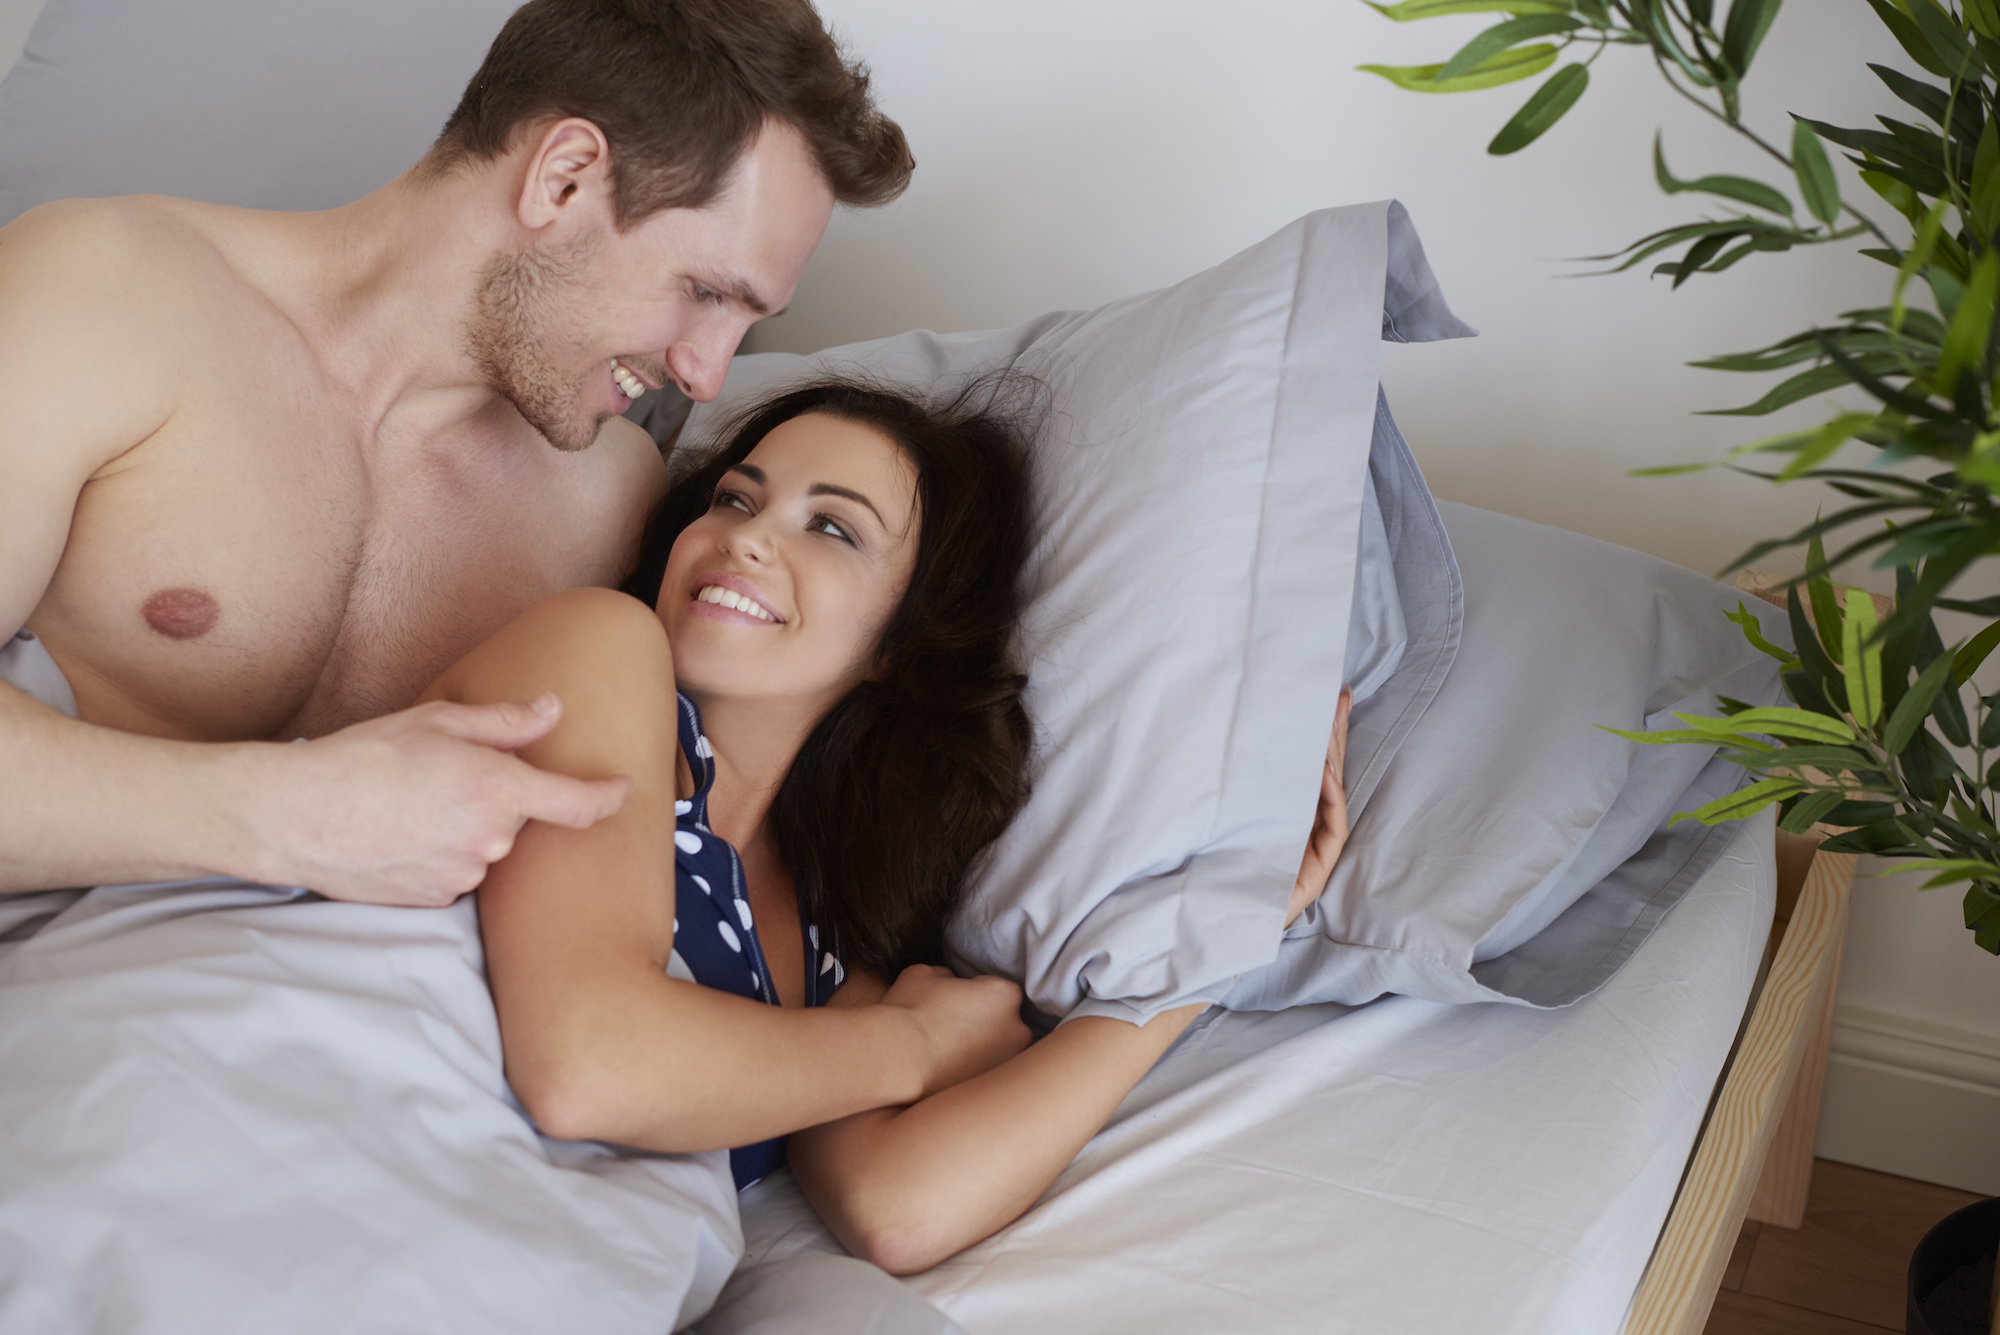 Pleasant morning of young couple